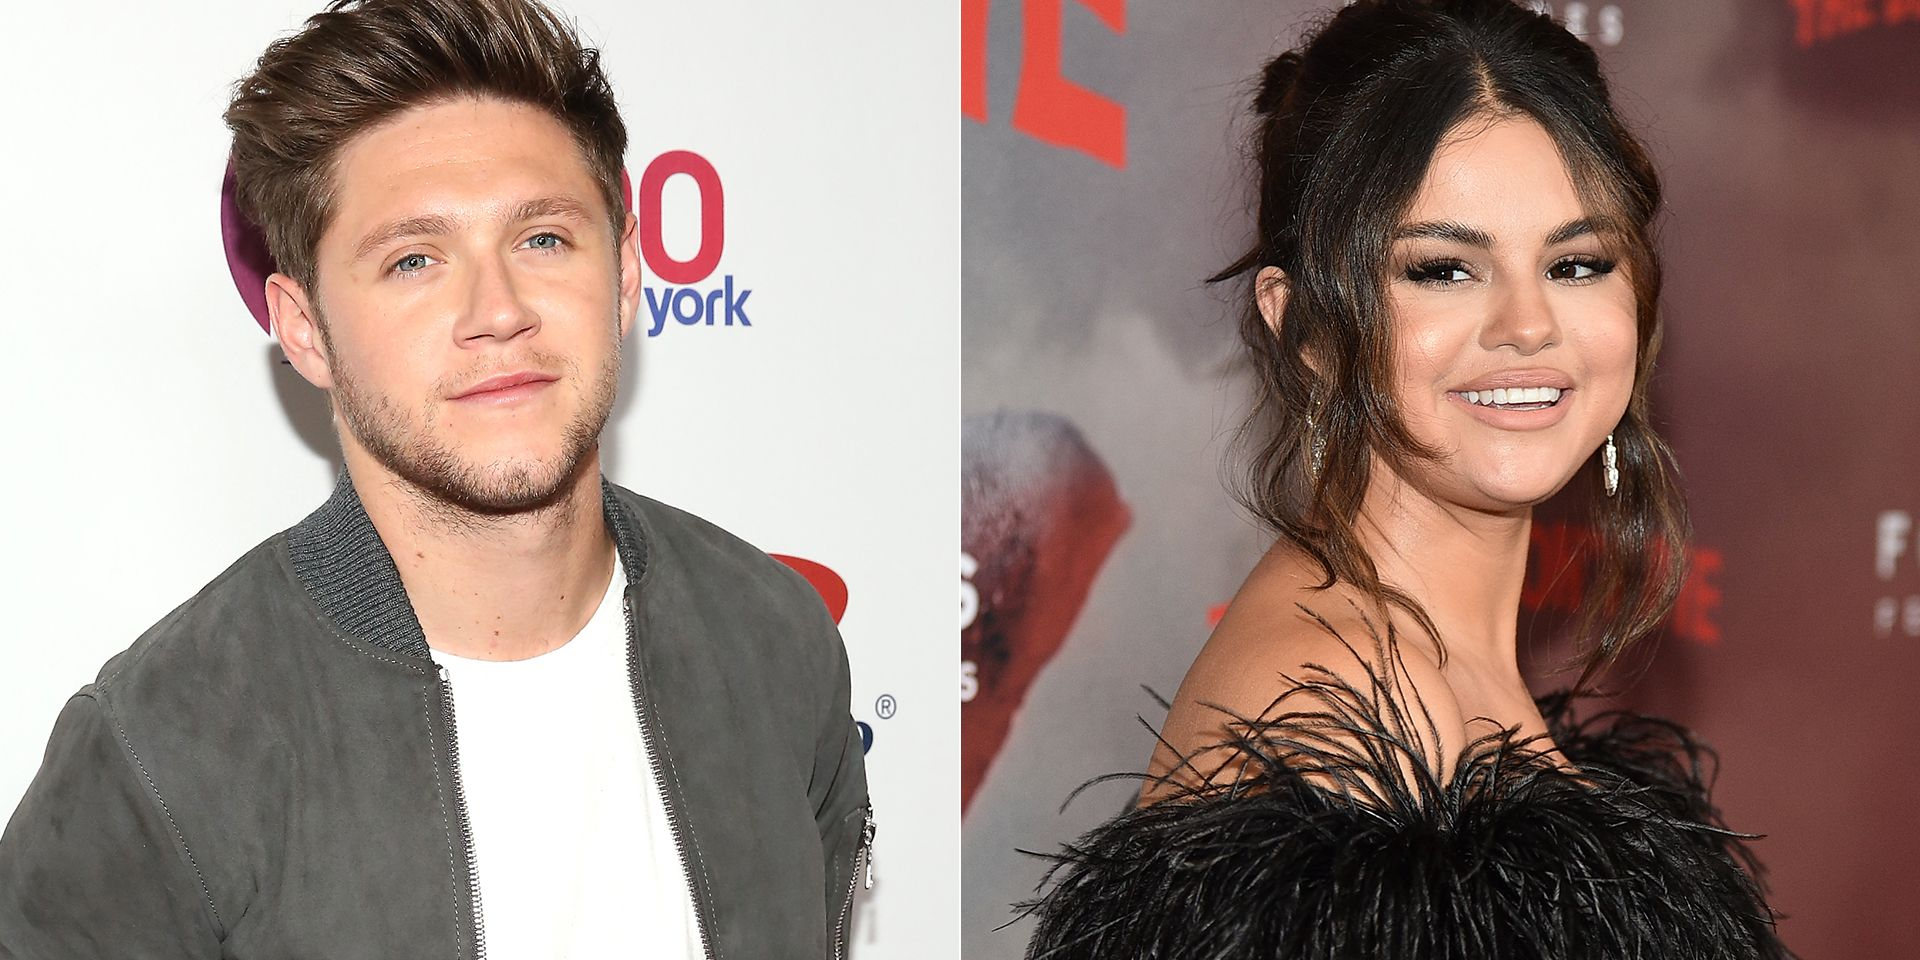 Niall Horan Reacted to Selena Gomez's New Music - Niall Left Two ...